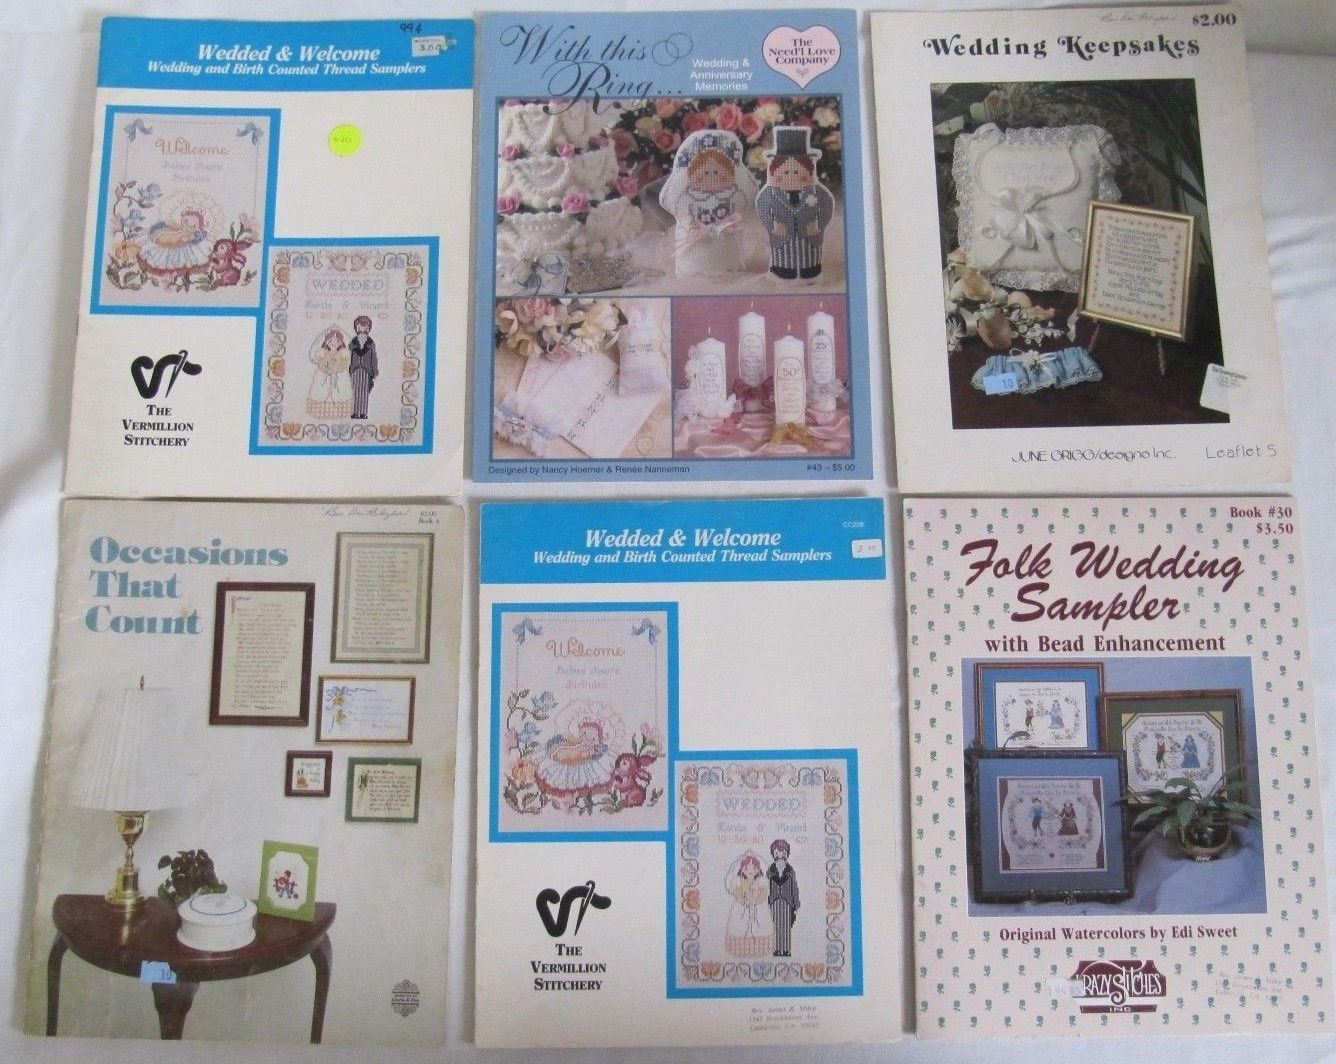 LOT OF 6 CROSS STITCH BOOKLETS FEATURING WEDDING TYPE SAMPLERS - $14.95